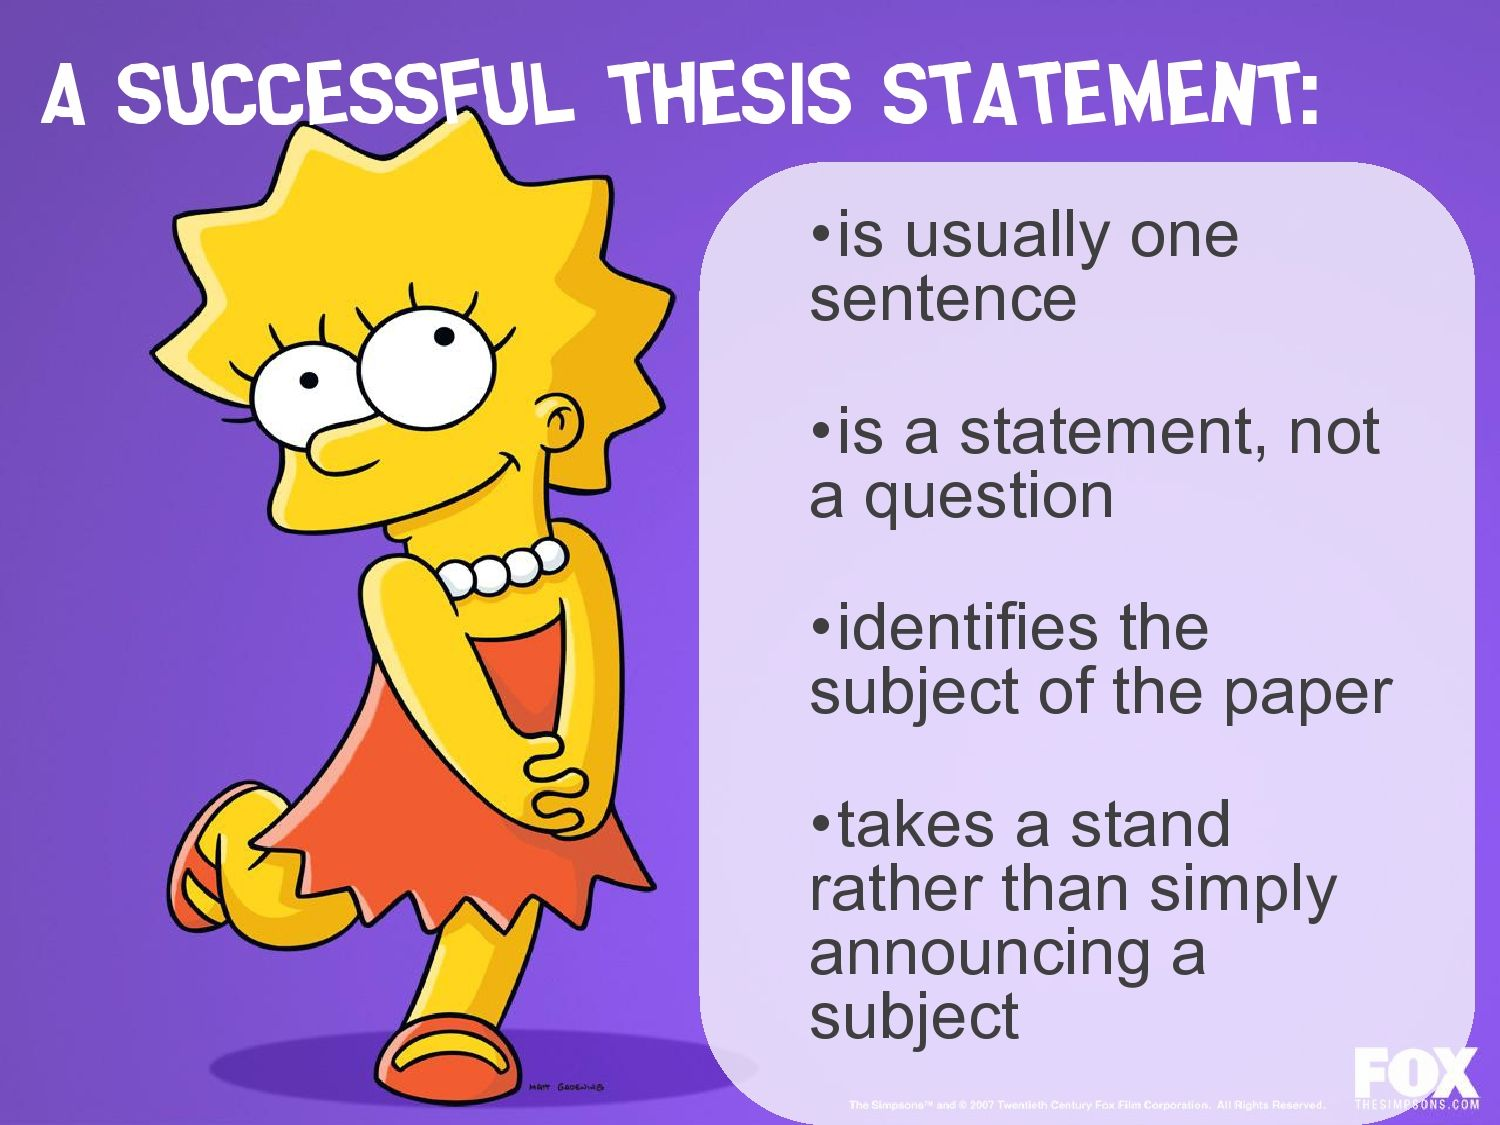 Essay Papers For Sale Lisa Simpson On Thesis Statements  Topic Sentences Sample High School Admission Essays also The Thesis Statement Of An Essay Must Be Balancing Simplicity And Complexity In Doctoral Writing  Topic  Hamlet Essay Thesis